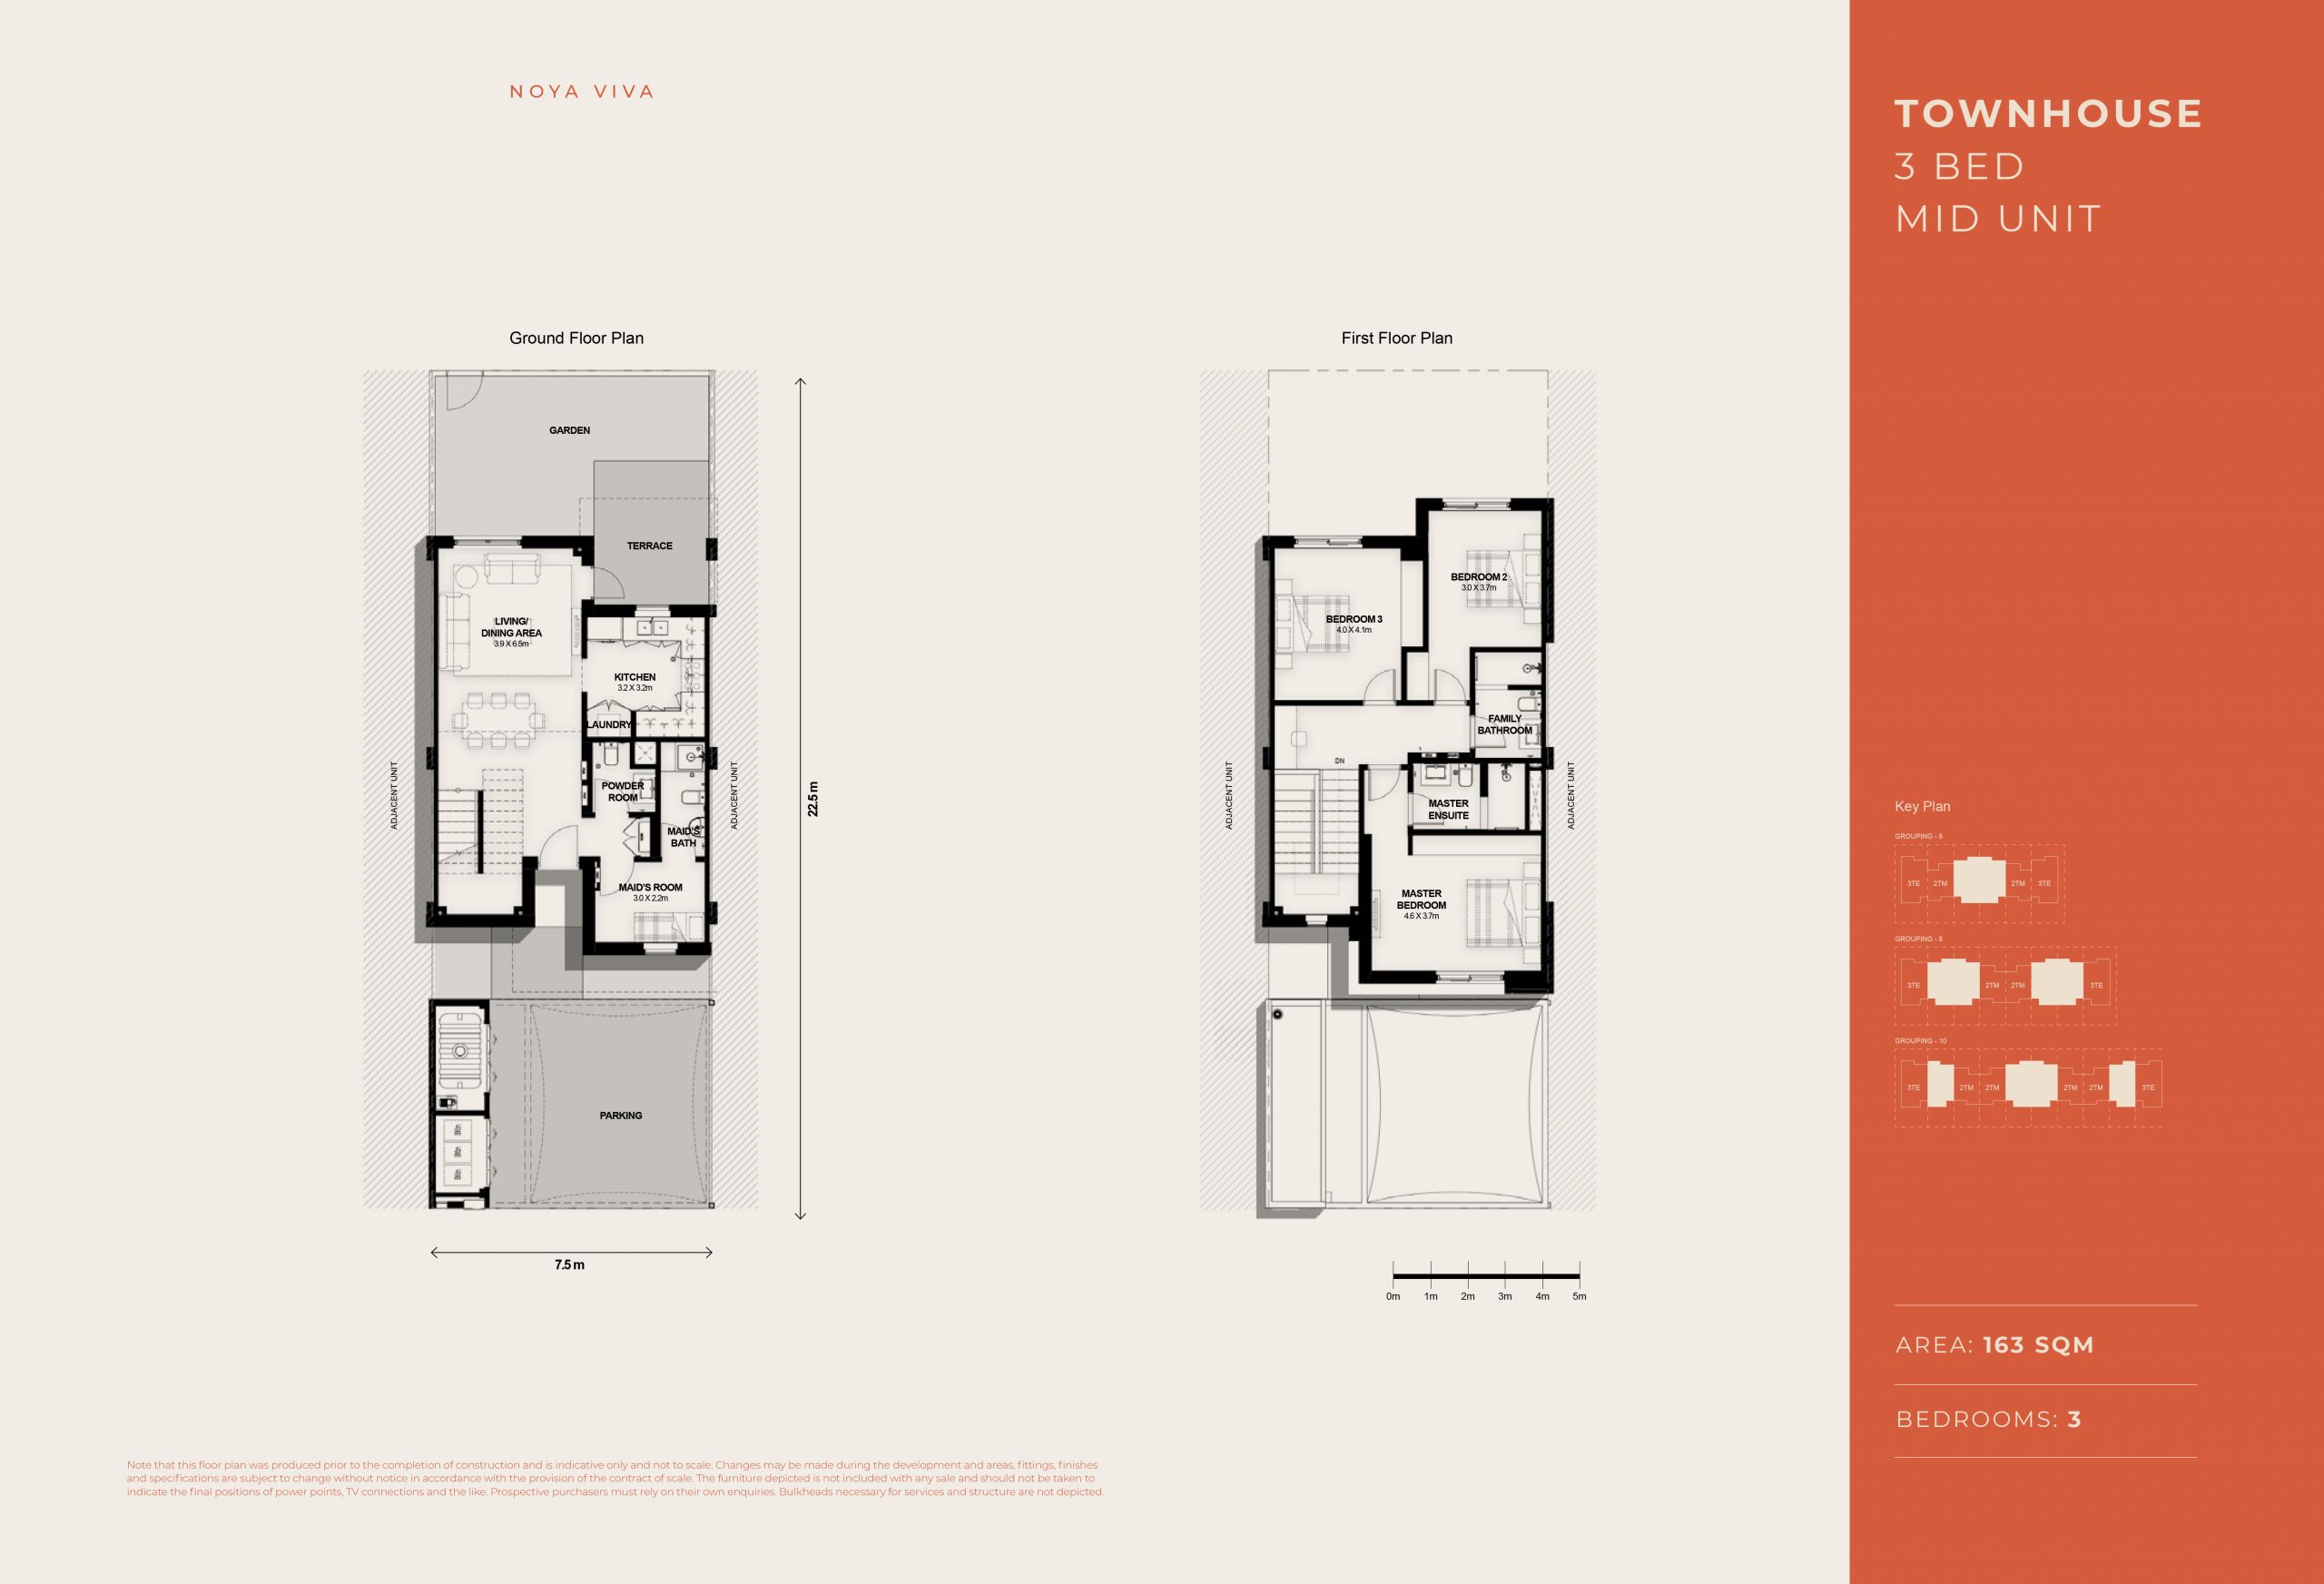 https://drehomes.com/wp-content/uploads/Townhouse-3-bed-mid-unit-scaled.jpg